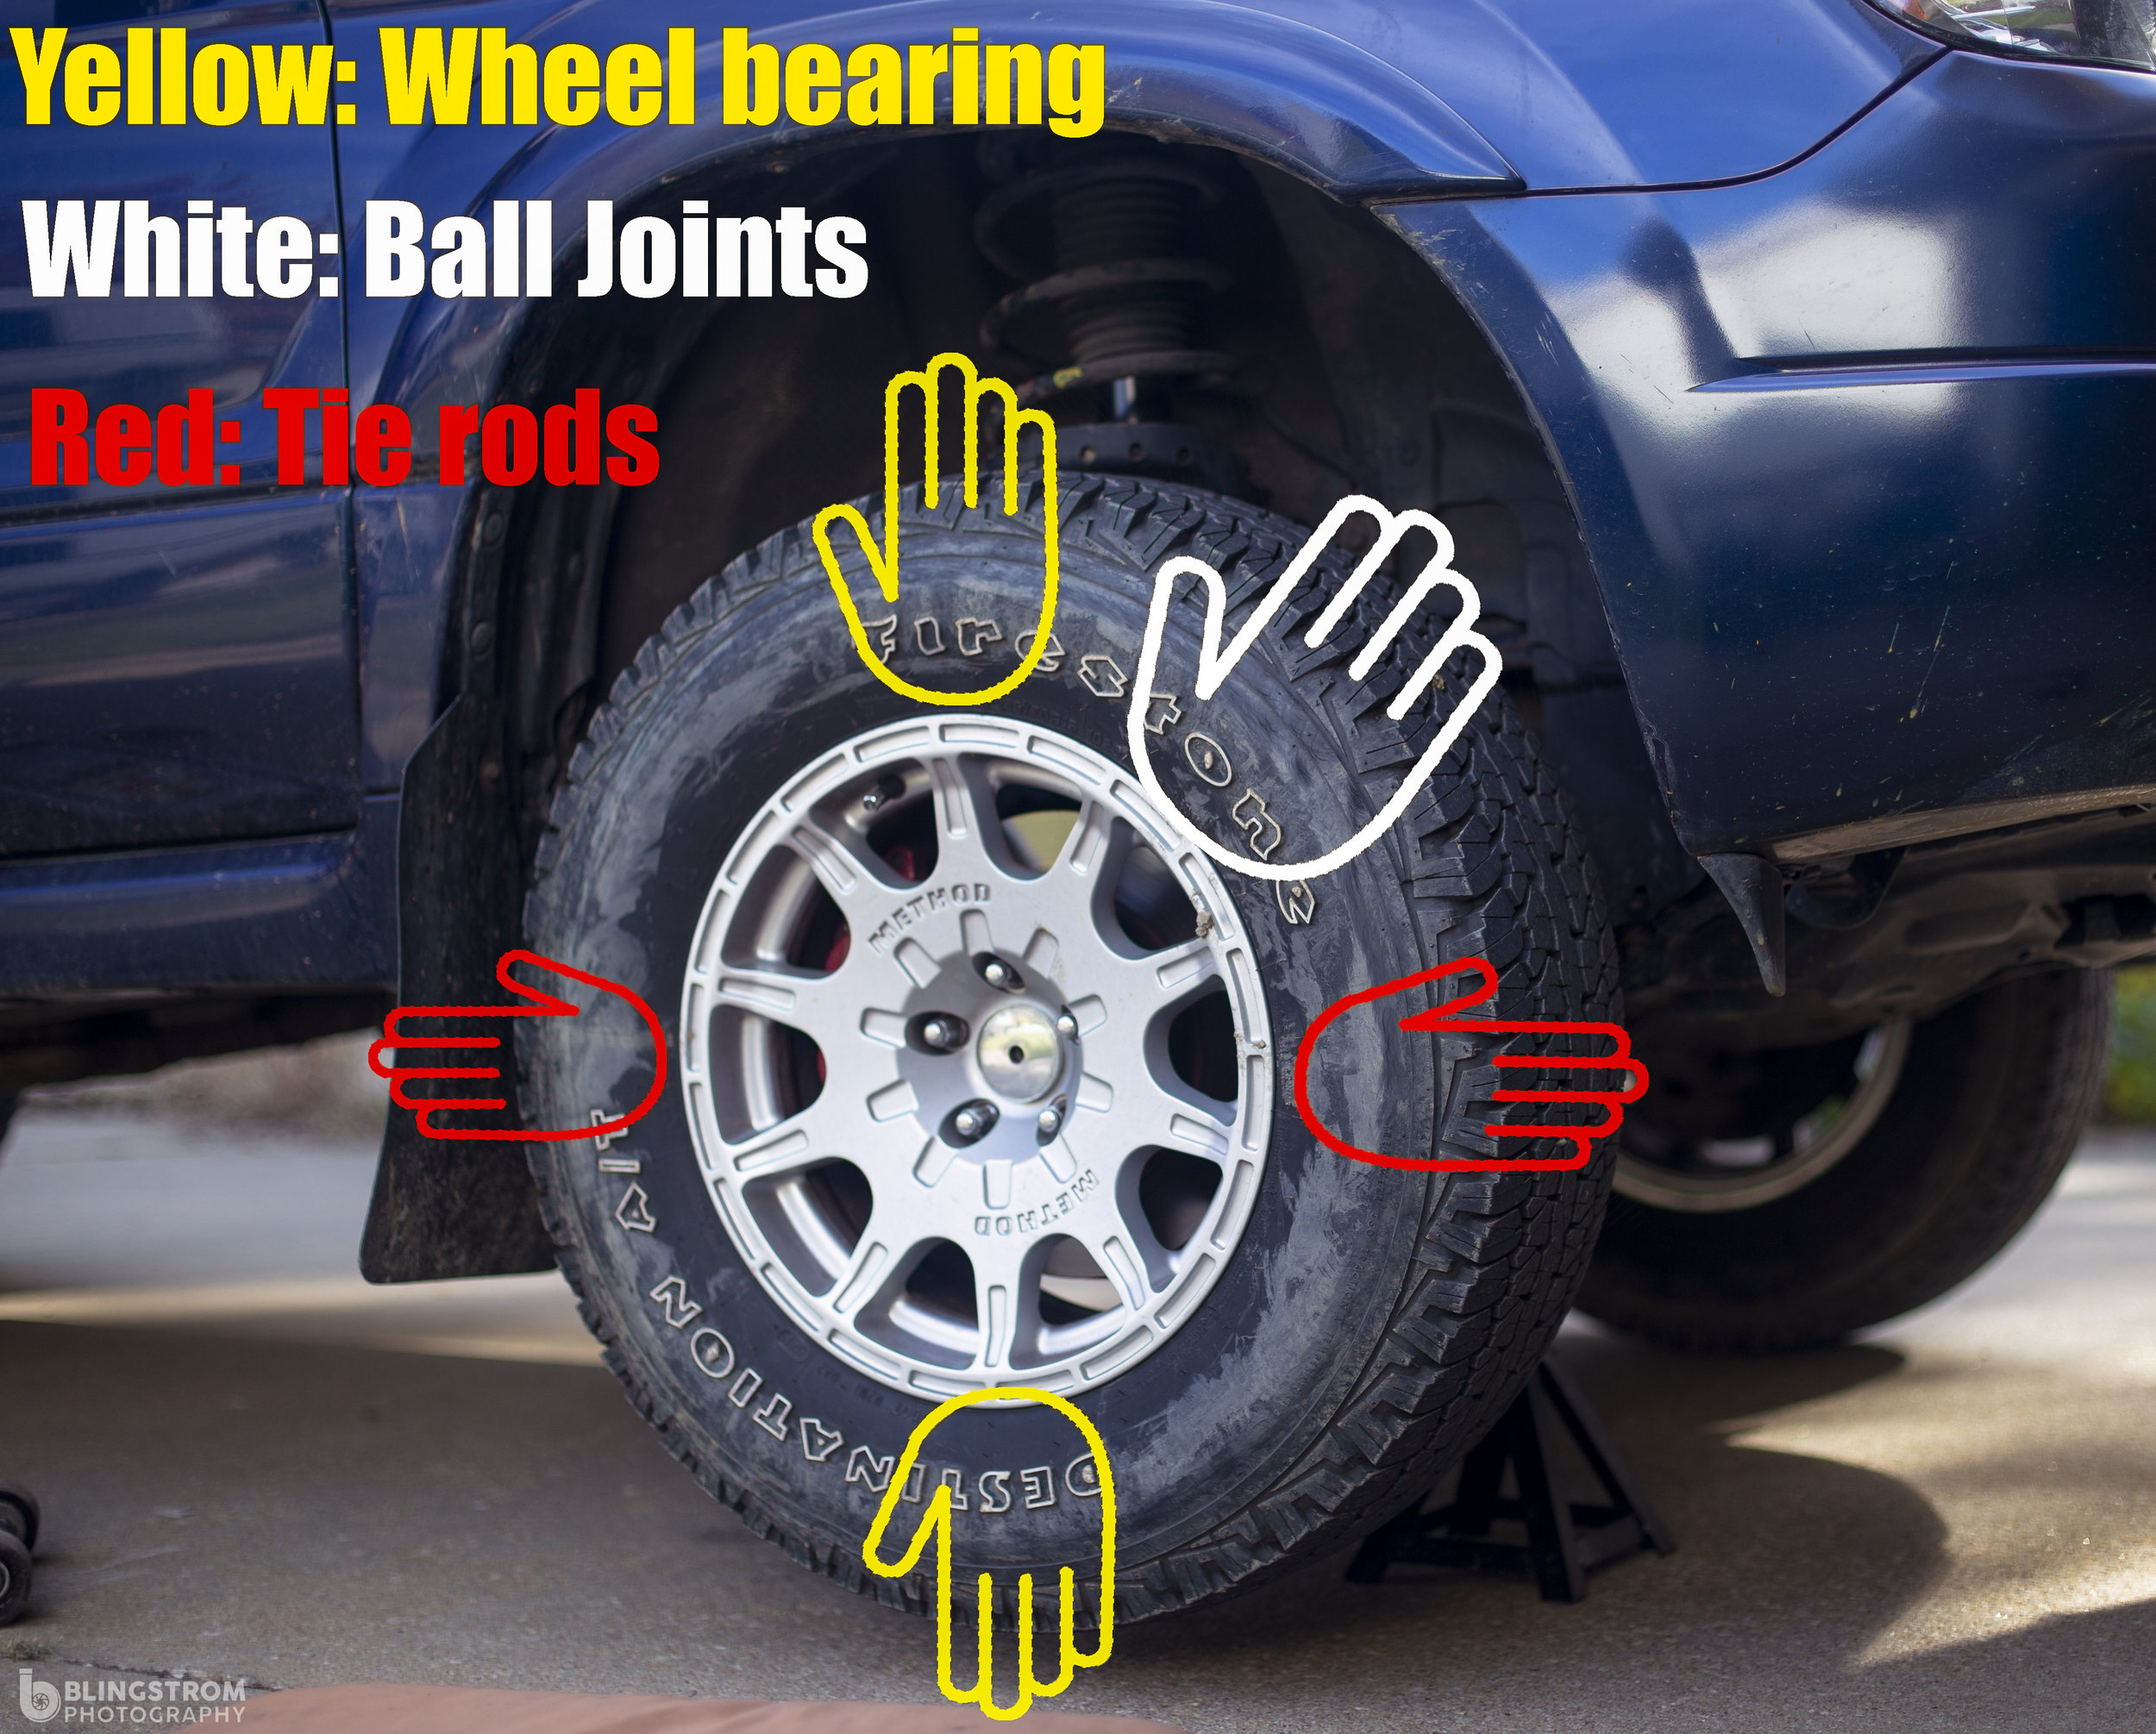 Some wheels bearings will have enough play that following these directions will expose the failure. I.e. a loose wheel bearing with have a measurably amount of play when pushed up and down. Some may never exhibit this issue and will just be noisy at high speeds.